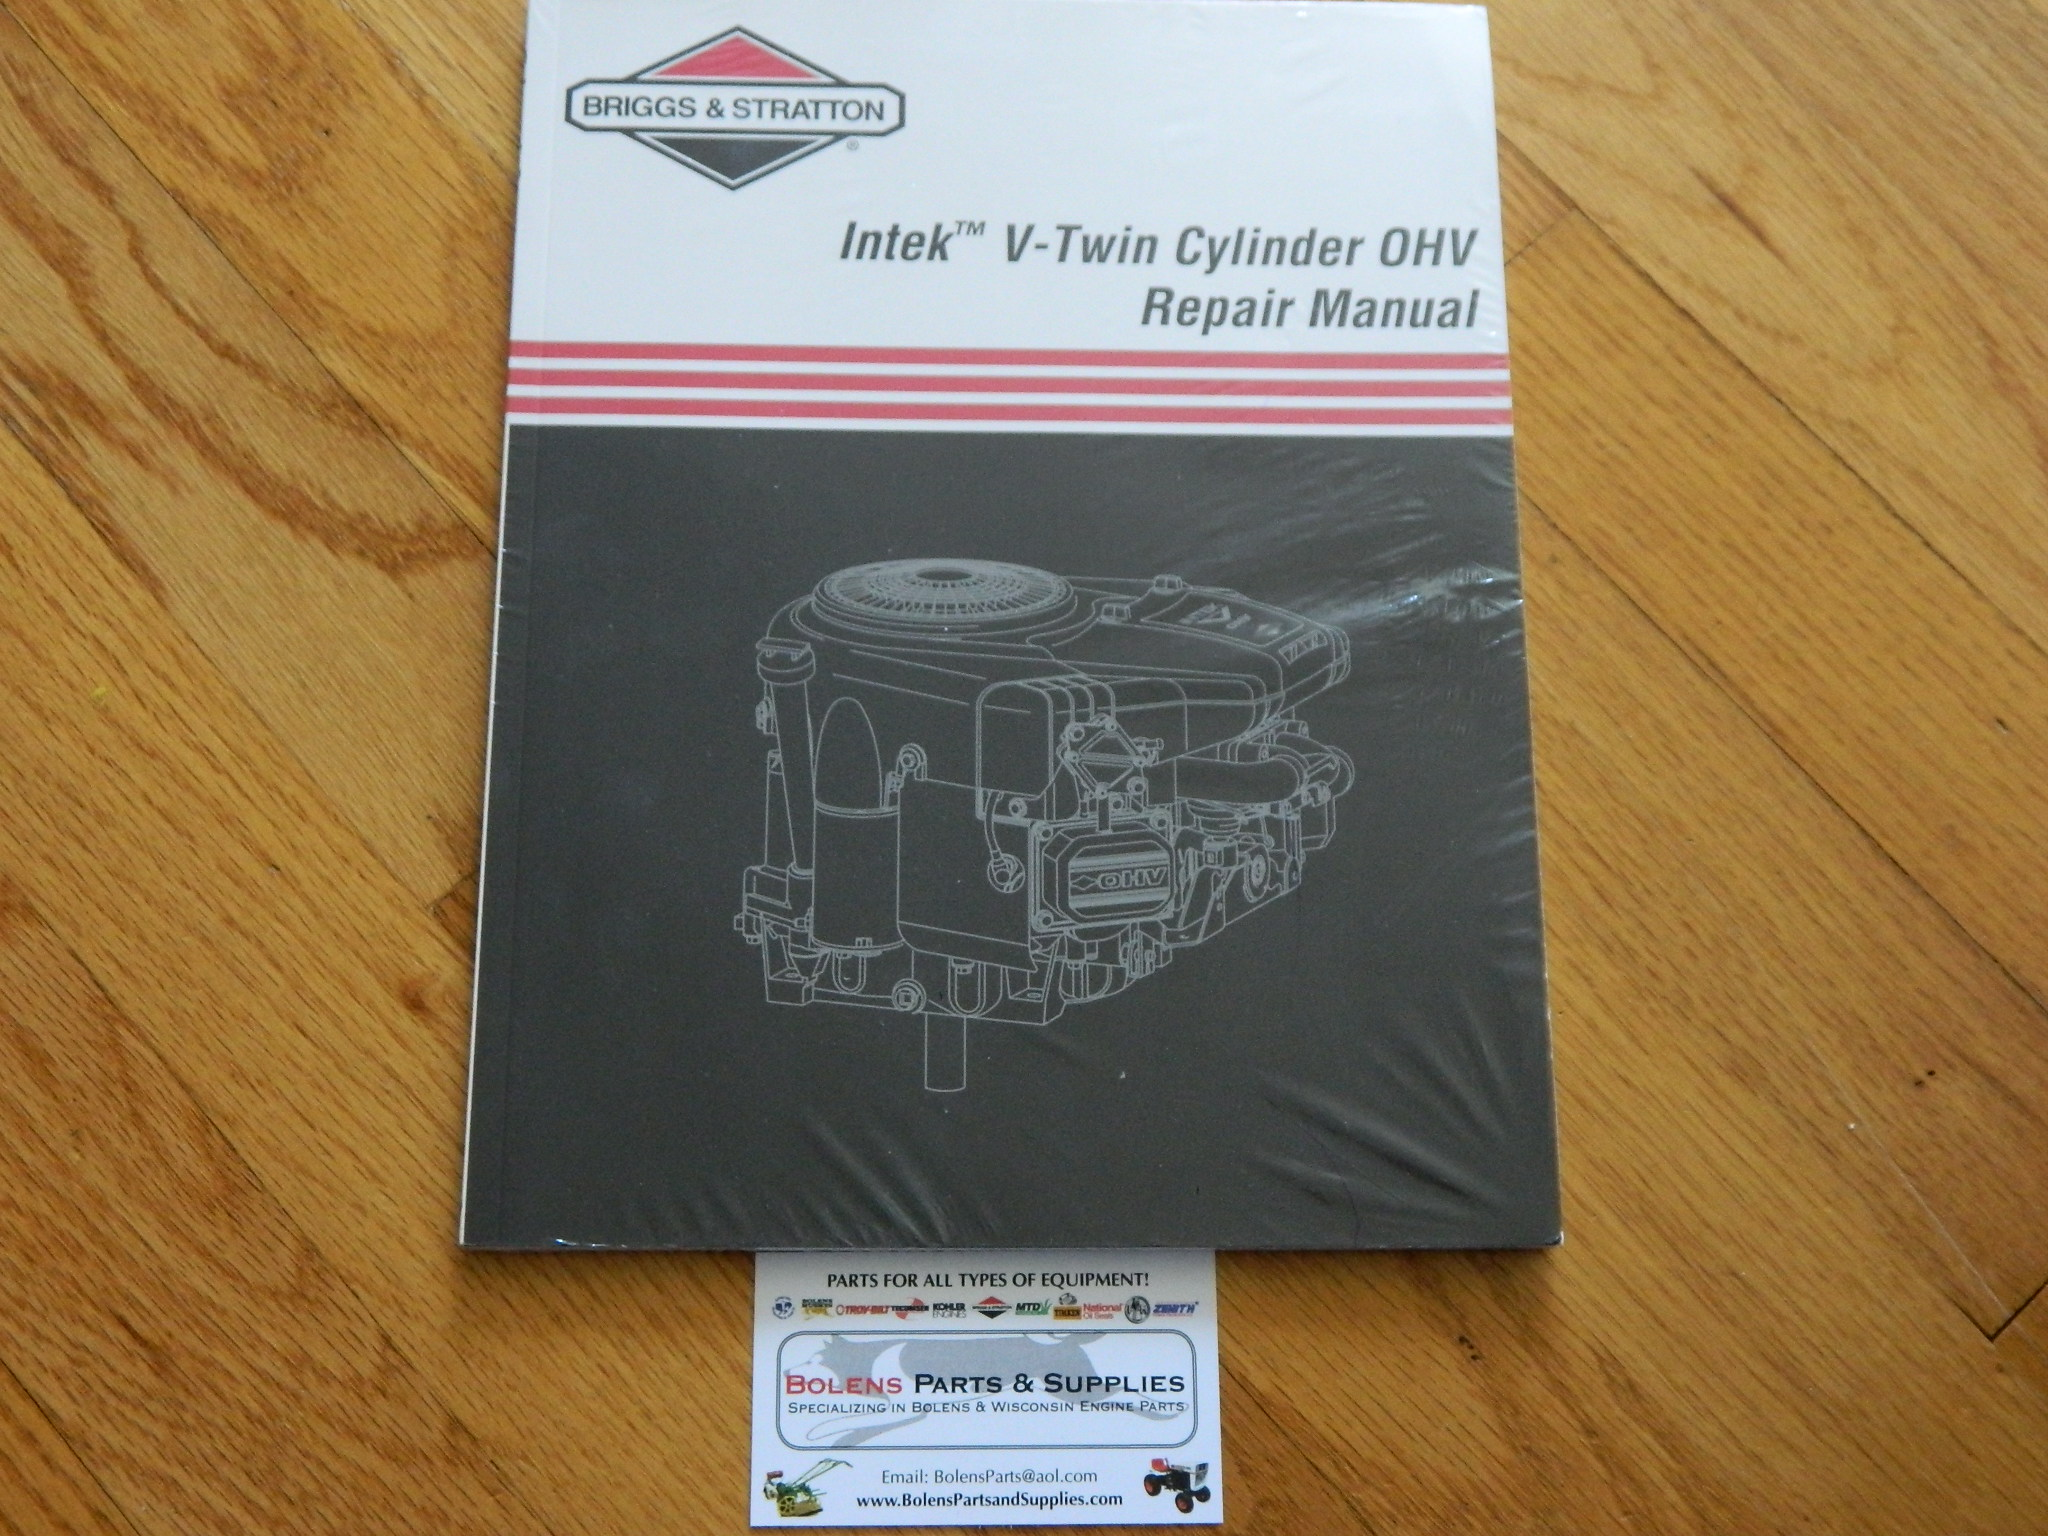 NEW BRIGGS & STRATTON Intek V-Twin OHV Repair Manual /Genuine manual not  reprint 273521